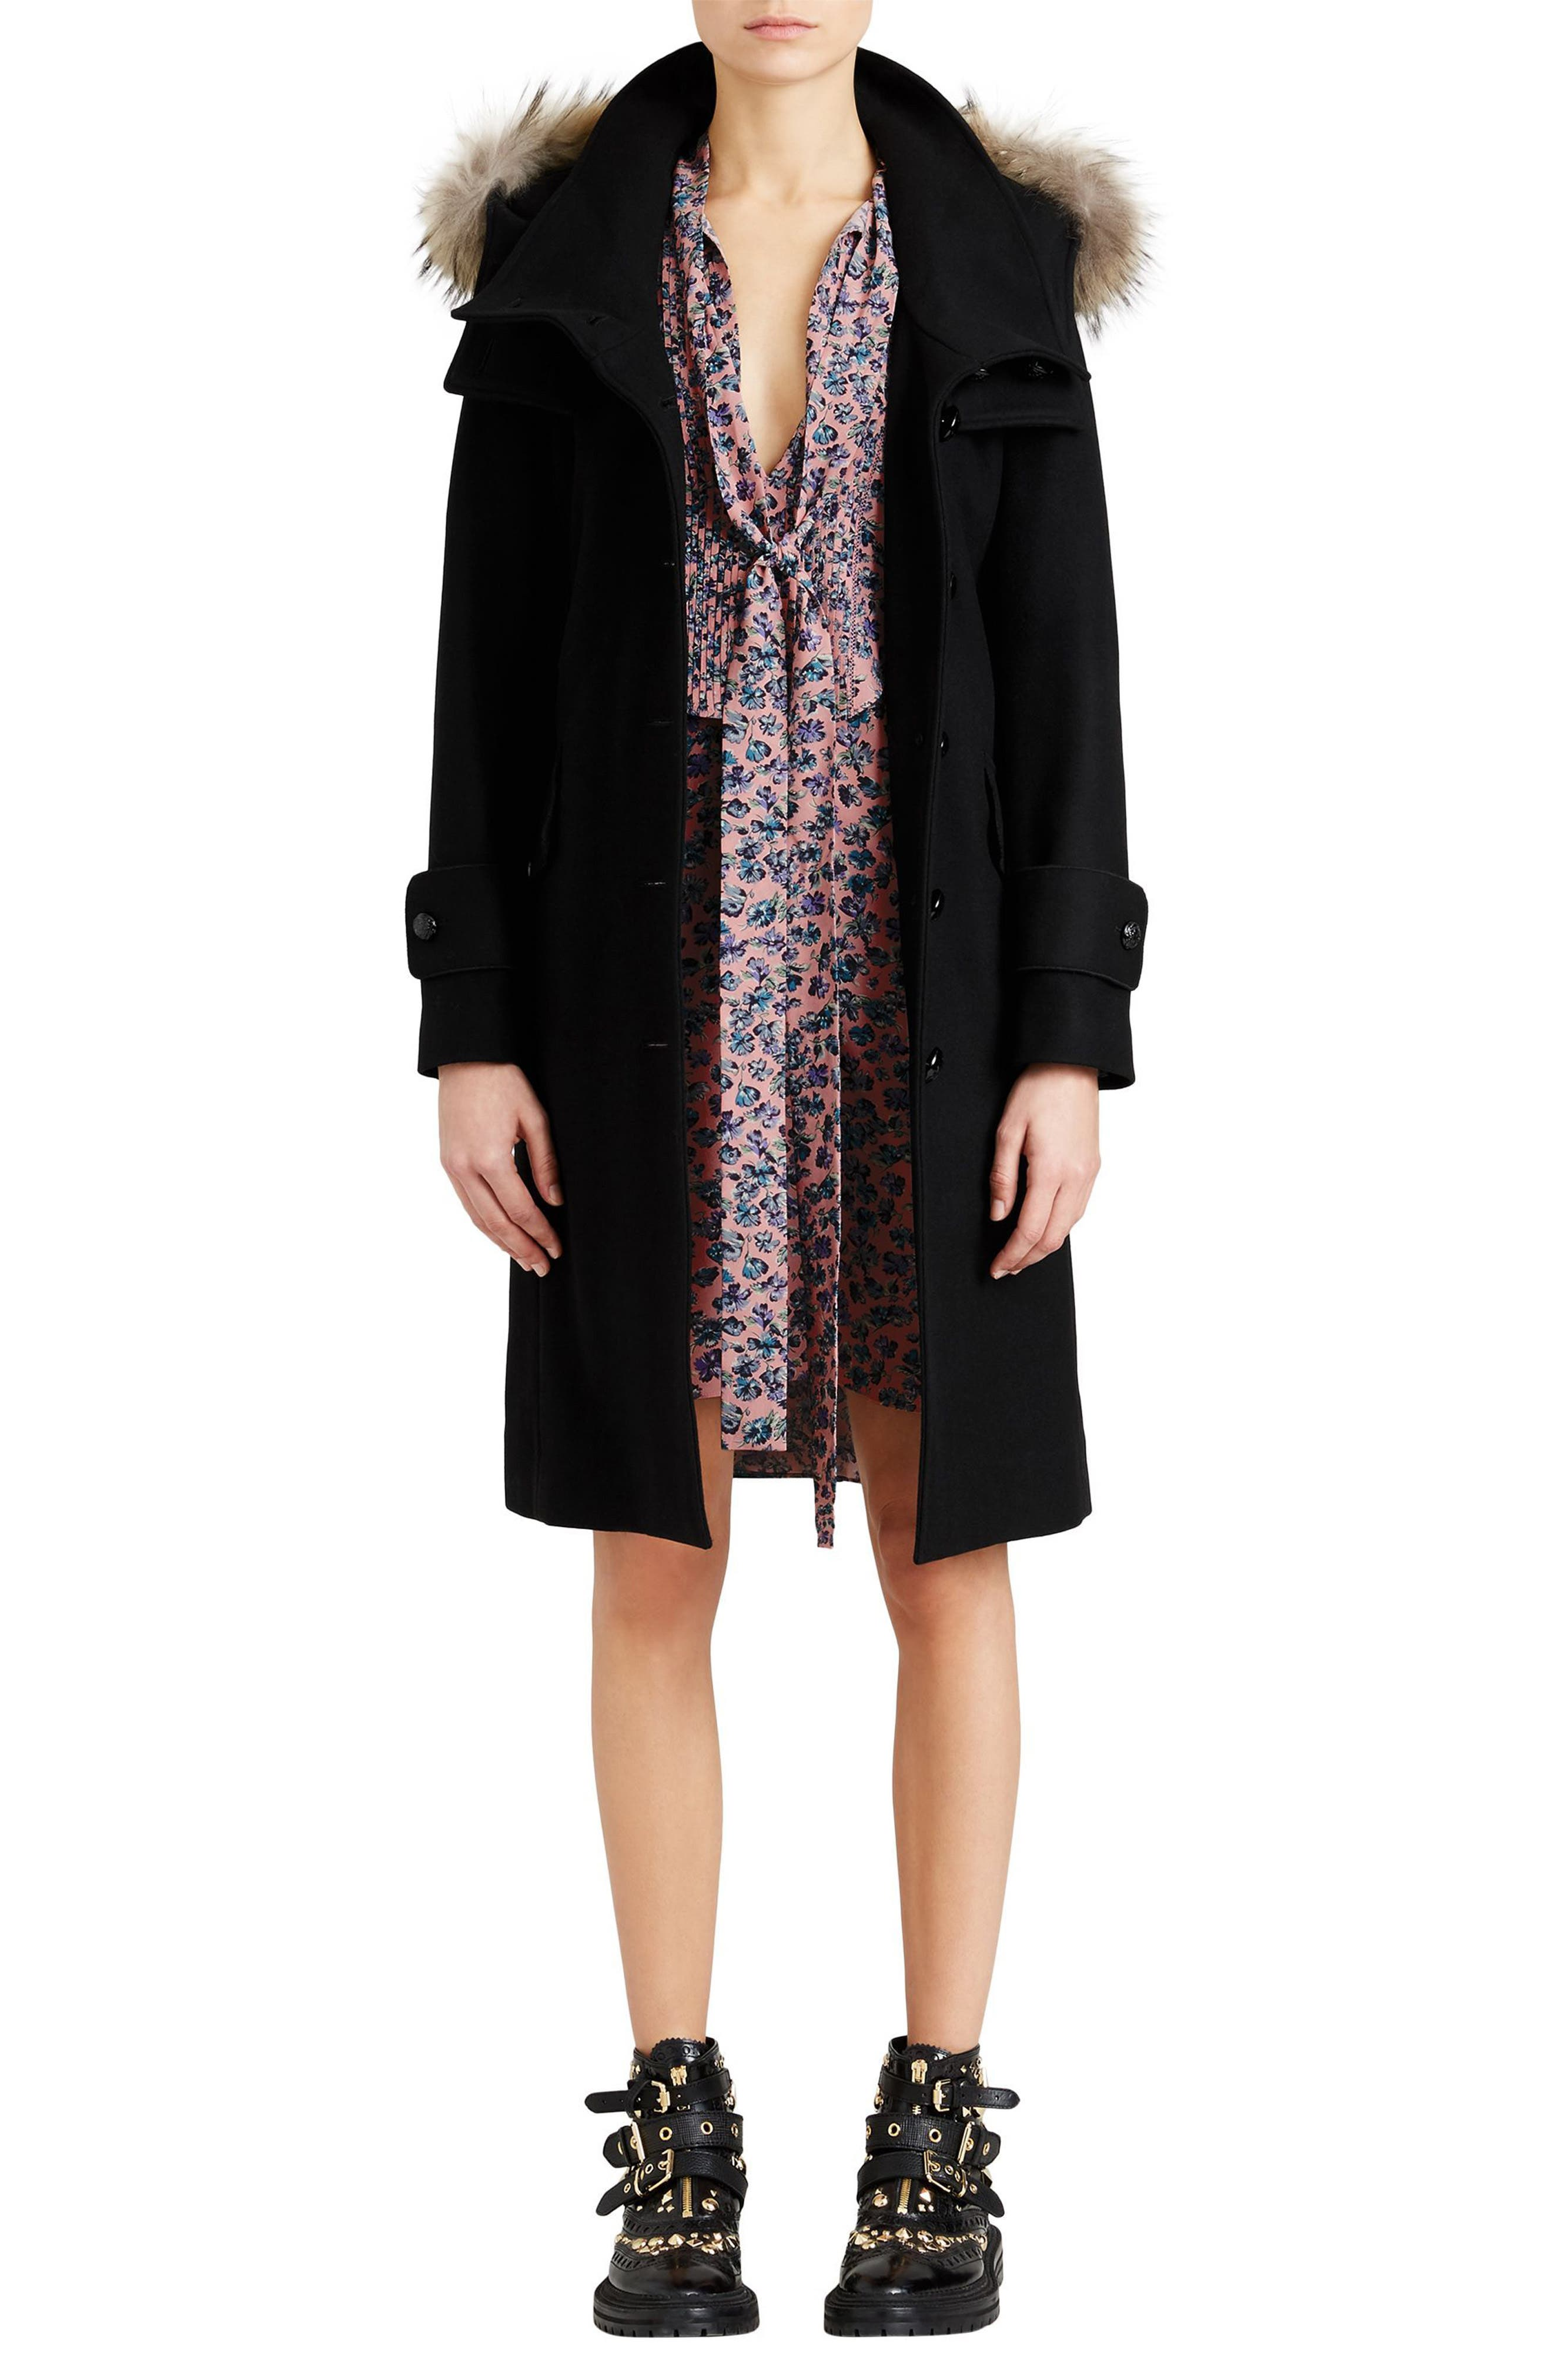 Claybrooke Wool Blend Coat with Removable Genuine Fox Fur Trim,                             Alternate thumbnail 9, color,                             001